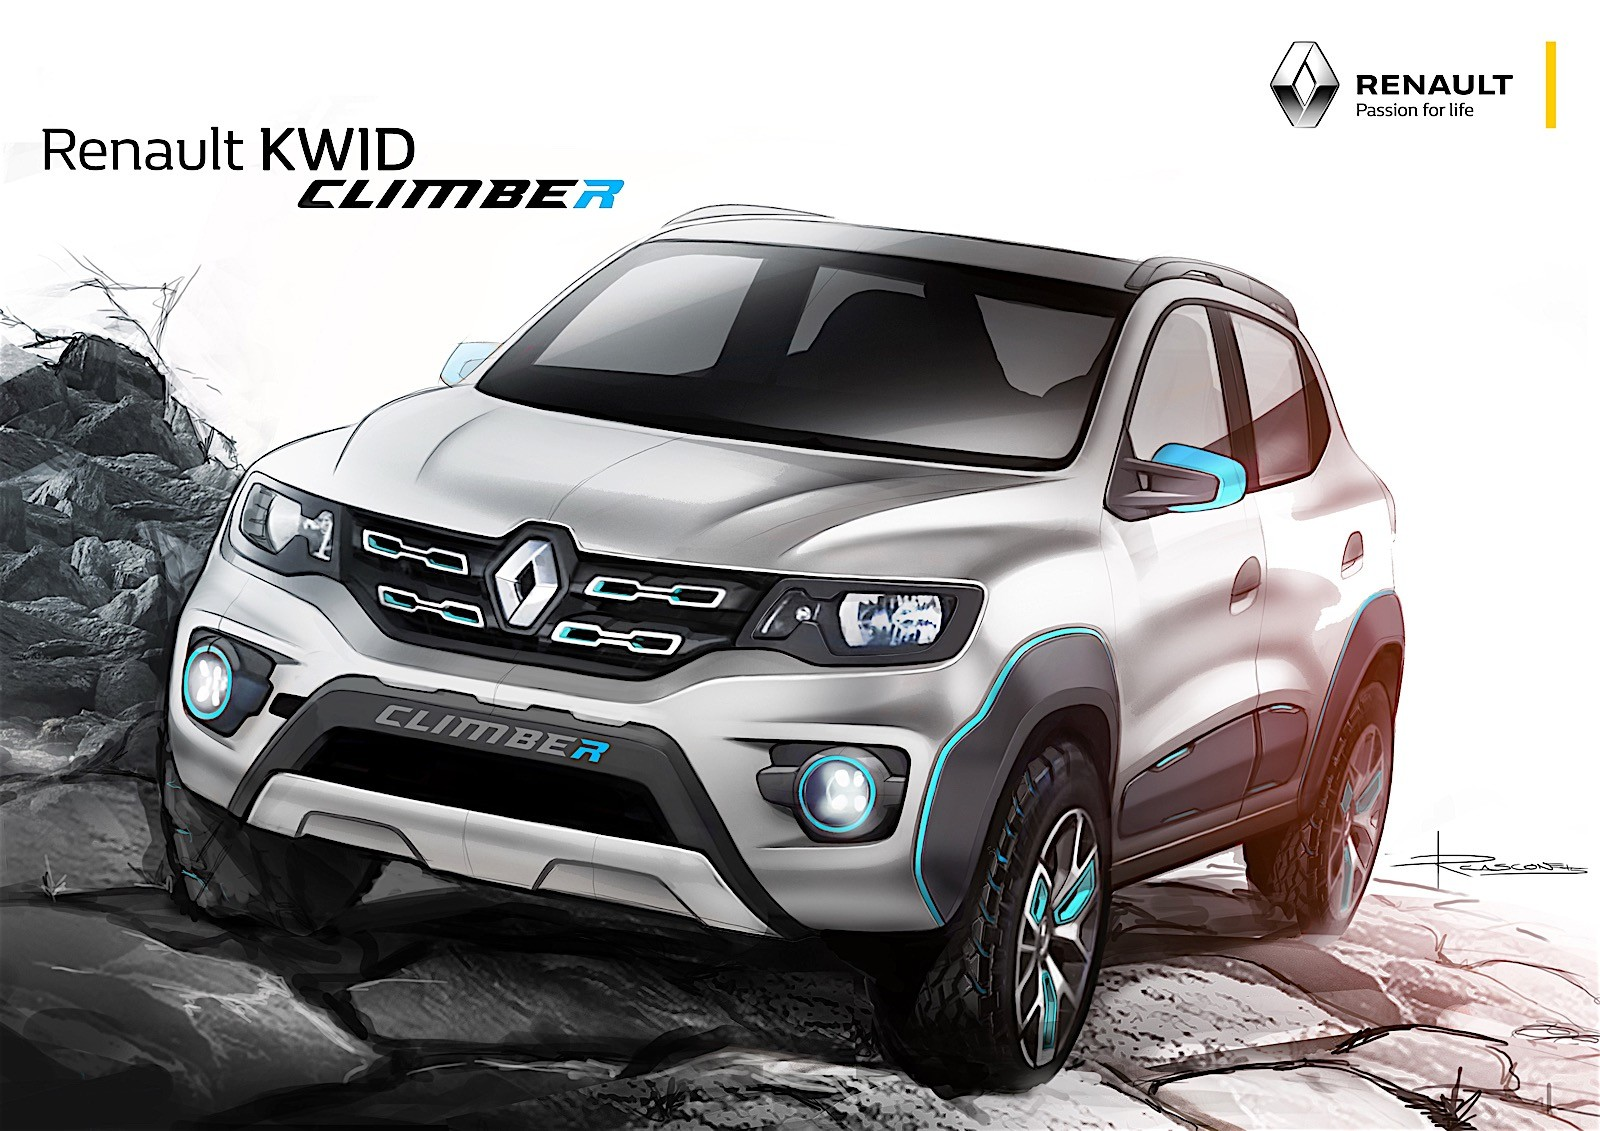 renault reveals two kwid based concepts in india autoevolution. Black Bedroom Furniture Sets. Home Design Ideas